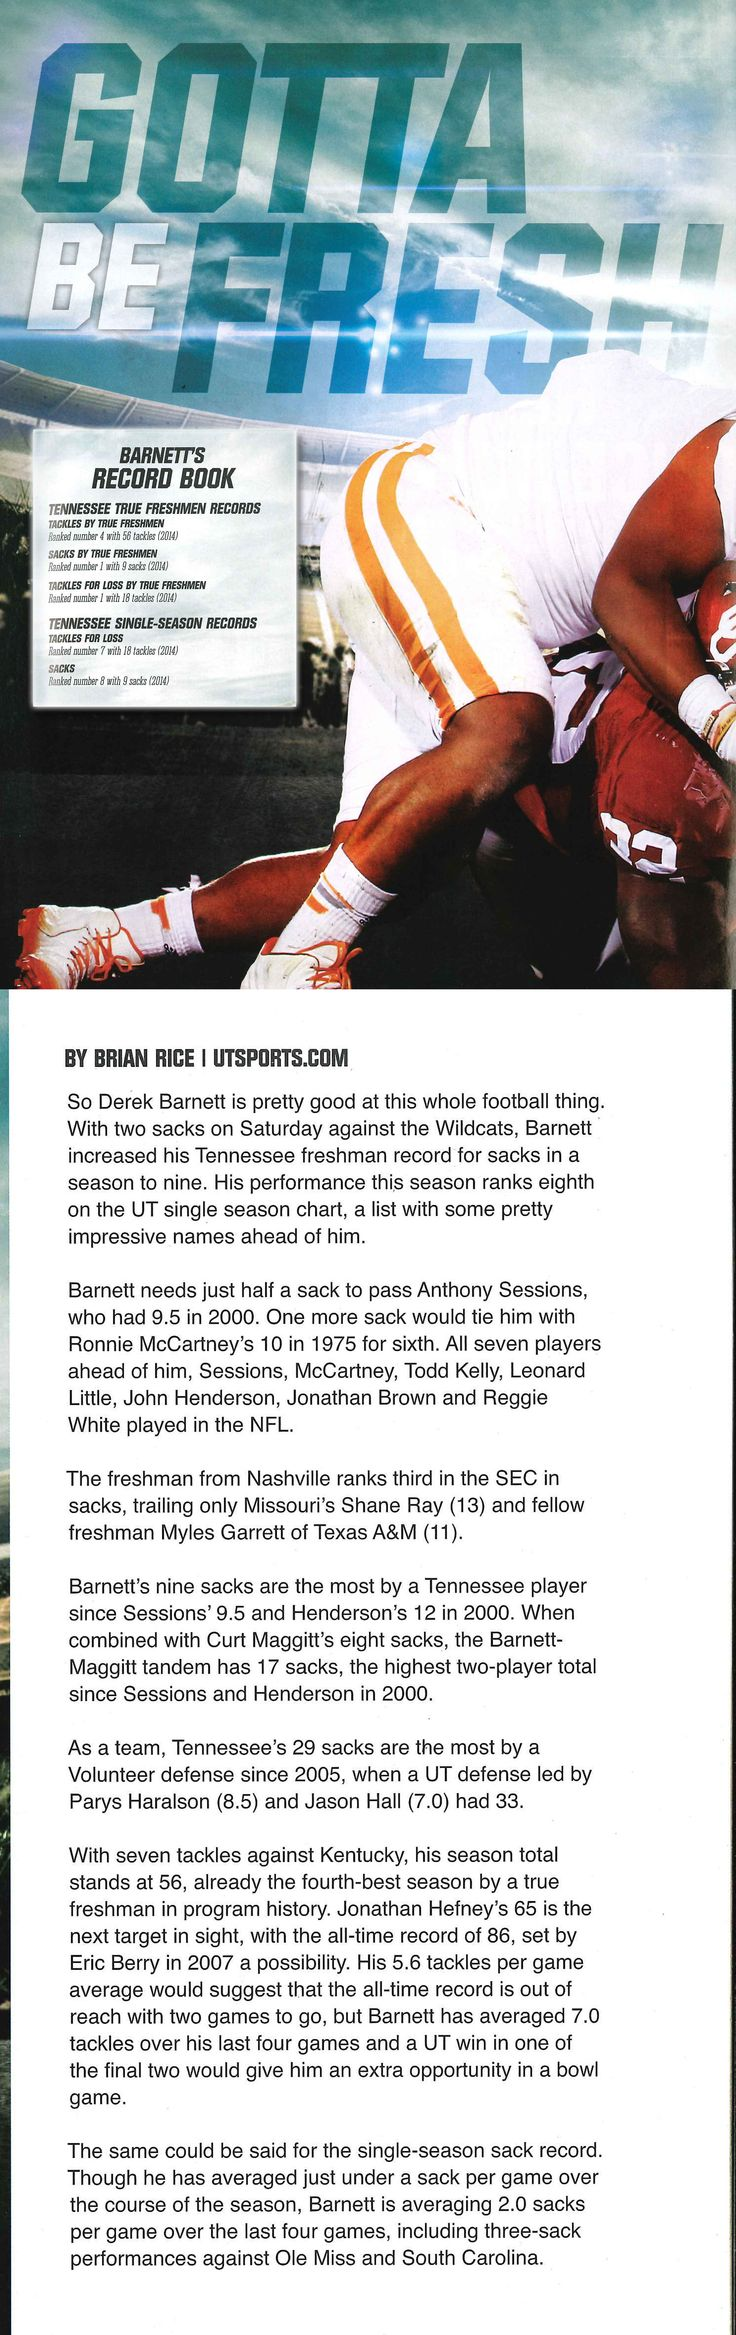 "Curious about this year's rising stars? Catch up on the @UTSports Football underclassmen through this ‪#‎SummerReading‬ clip: ""Gotta Be Fresh,"" about 2014 freshman Derek Barnett from last year's UT program.   Hungry for more? This FoxSports article from May also has a lot to say on this sophomore defensive end. http://www.foxsports.com/college-football/story/tennessee-volunteers-sec-breakout-stars-derek-barnett-052115"